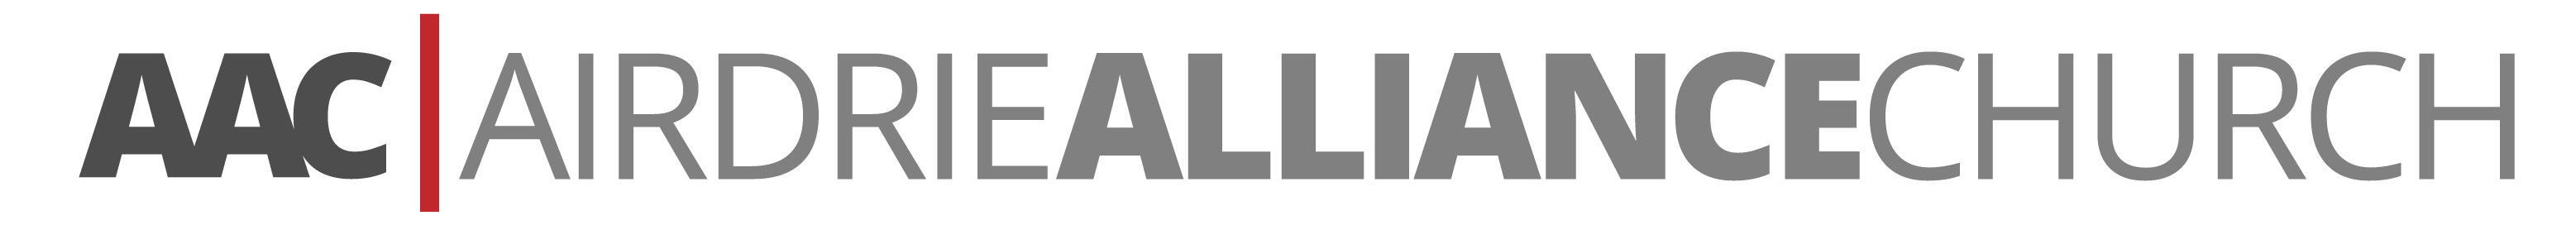 AIRDRIE ALLIANCE CHURCH Logo